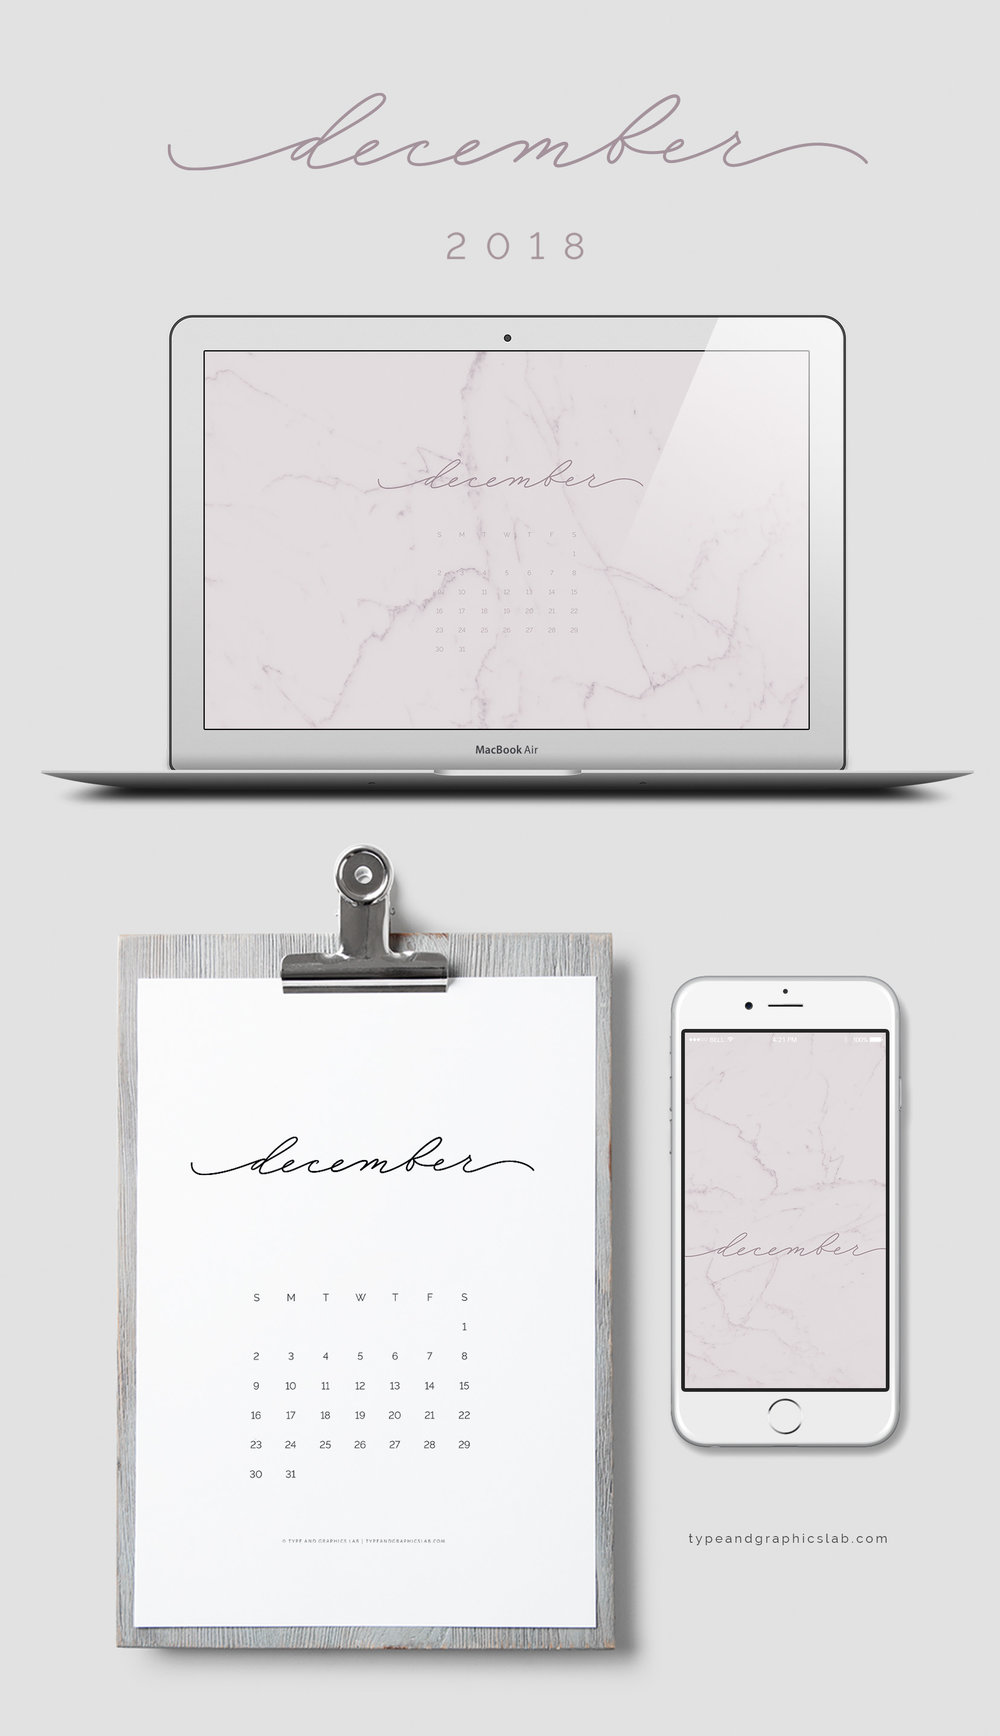 Download free desktop, mobile, and printable calendar for December 2018 | © typeandgraphicslab.com | For personal use only